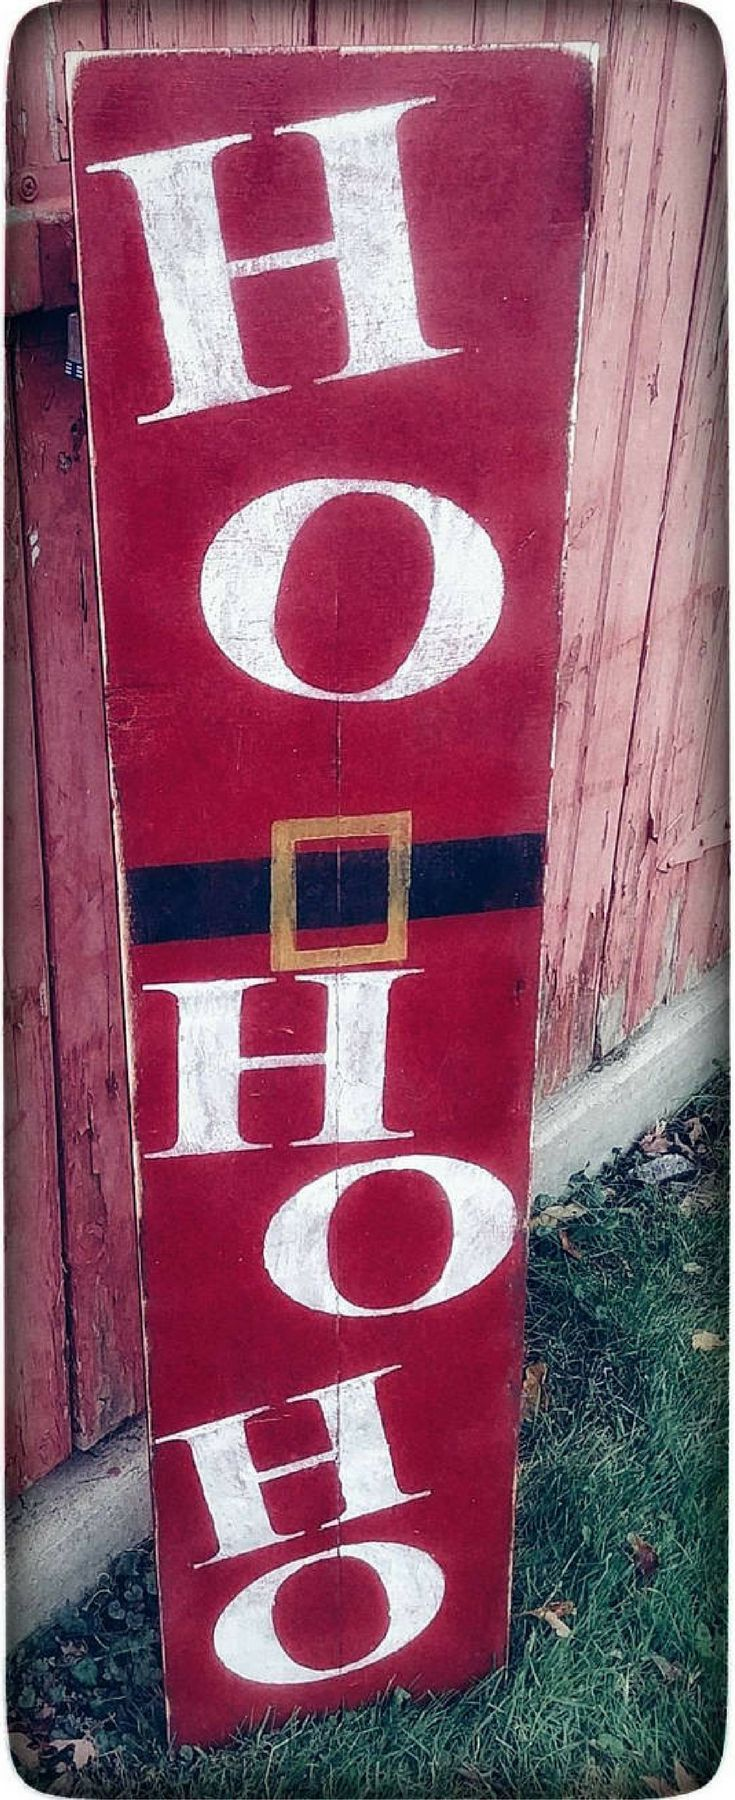 Rustic Santa sign! Wood Ho Ho Ho Sign for Porch | Rustic Christmas Sign | Santa Welcome Sign | Welcome porch Sign | Farmhouse Christmas Décor| Christmas porch sign, Christmas decor #ad